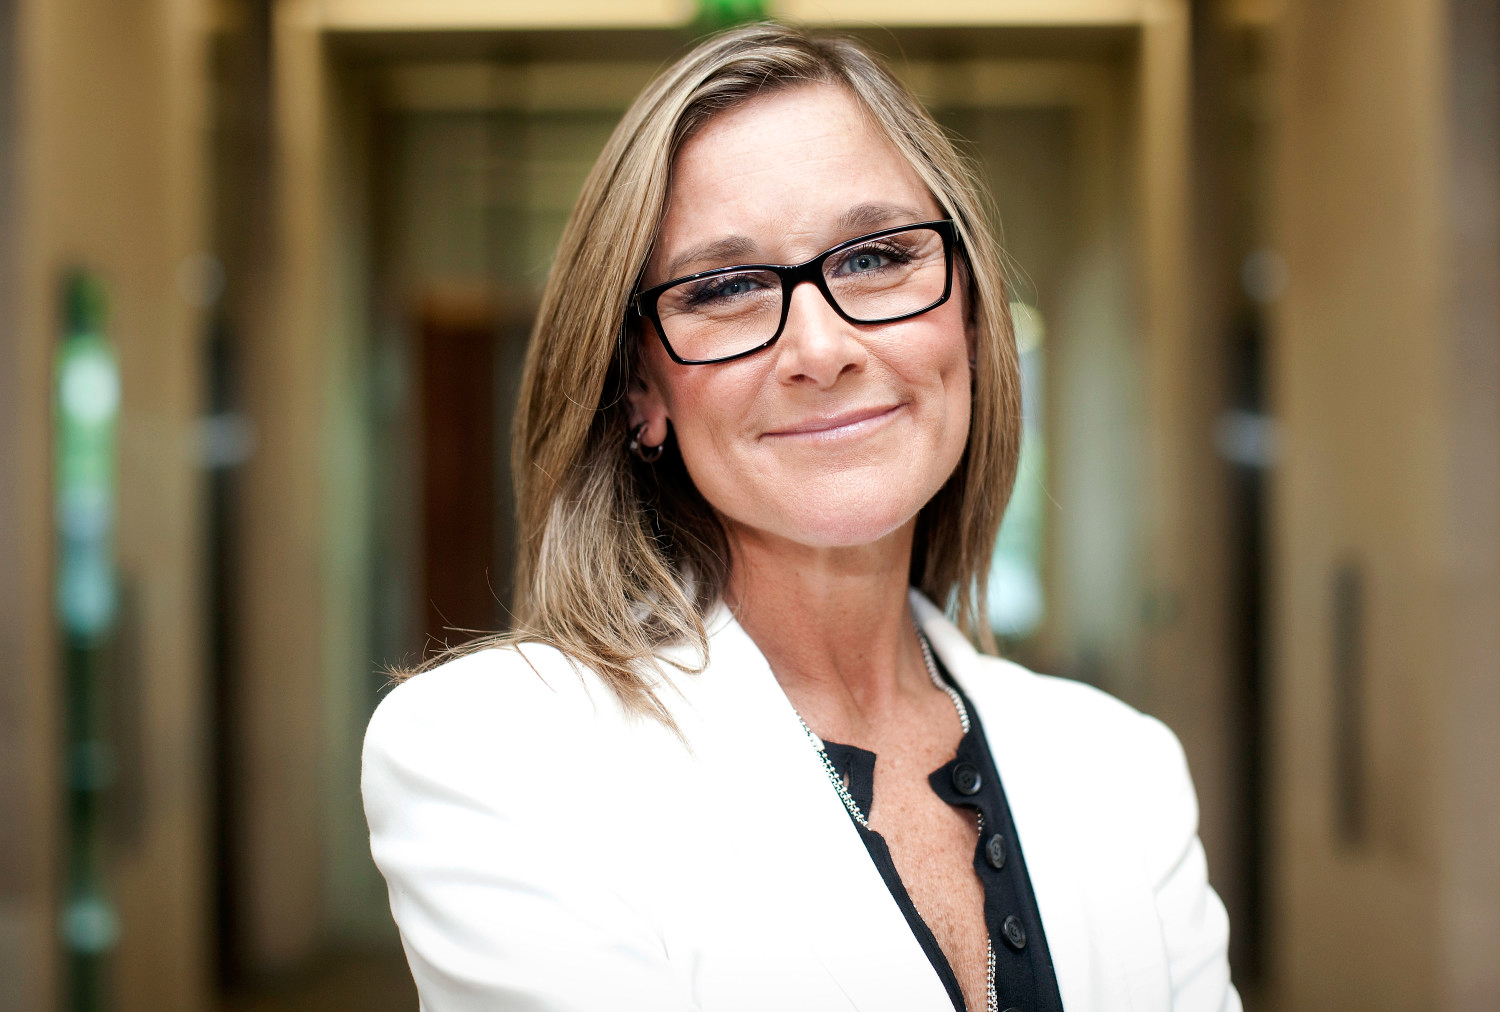 Angela Ahrendts, ex-CEO da Burberry e agora vice-presidente sênior de varejo da Apple